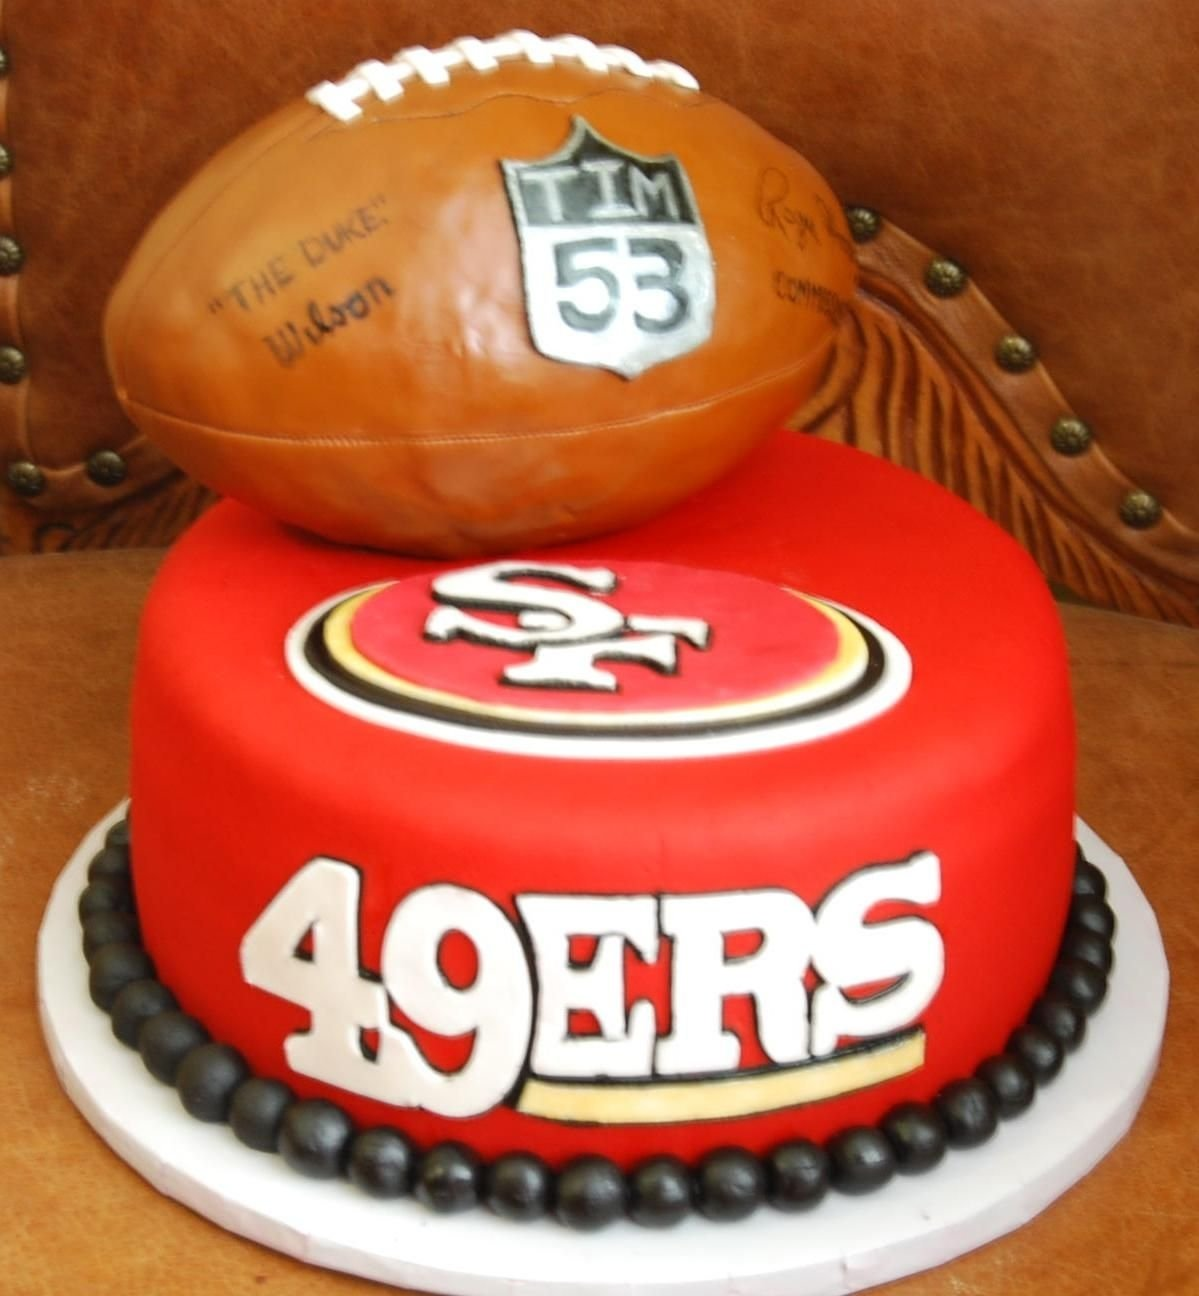 10 Most Recommended Fun Birthday Ideas San Francisco 49ers Edible Photo Image Cake Topper